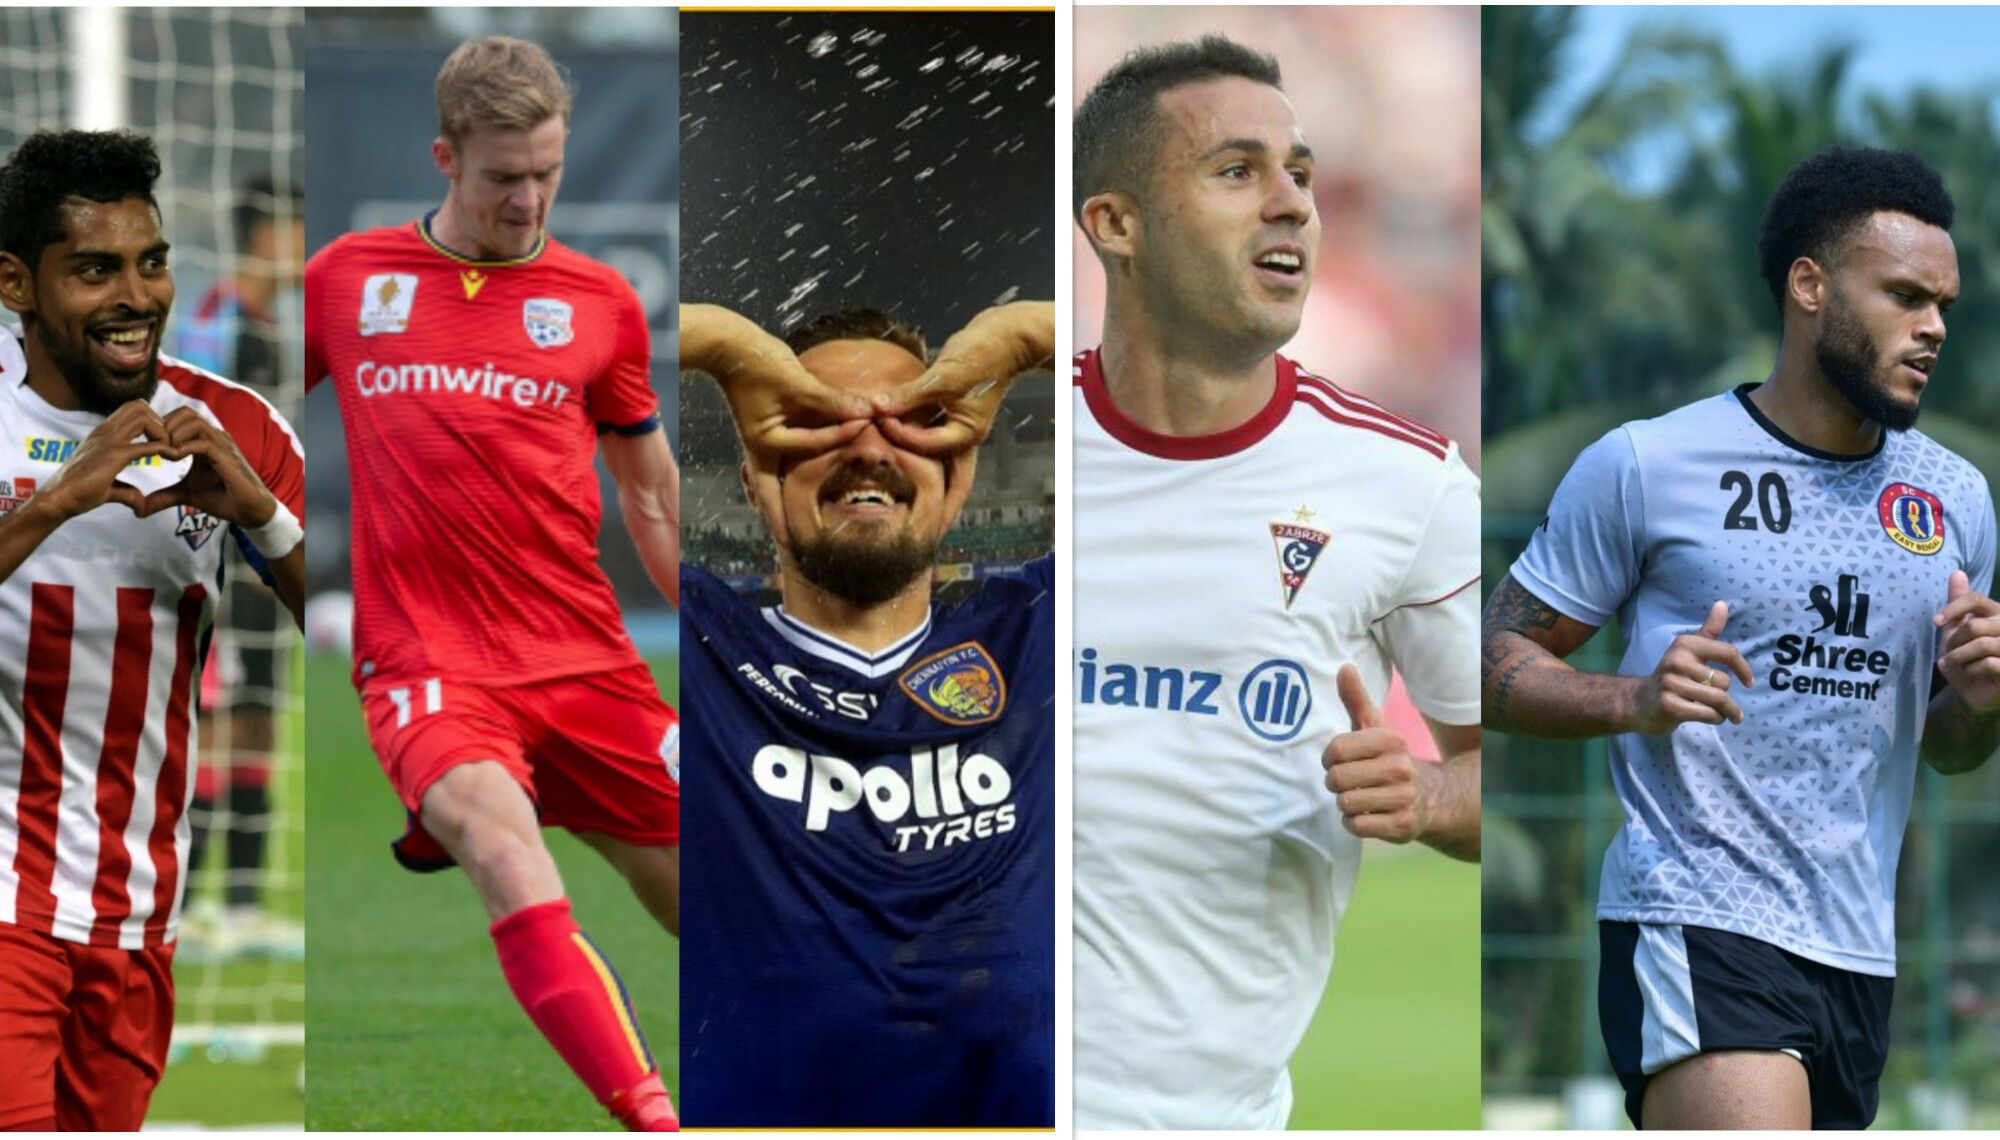 ISL: A look at the foreign strikers of all the team